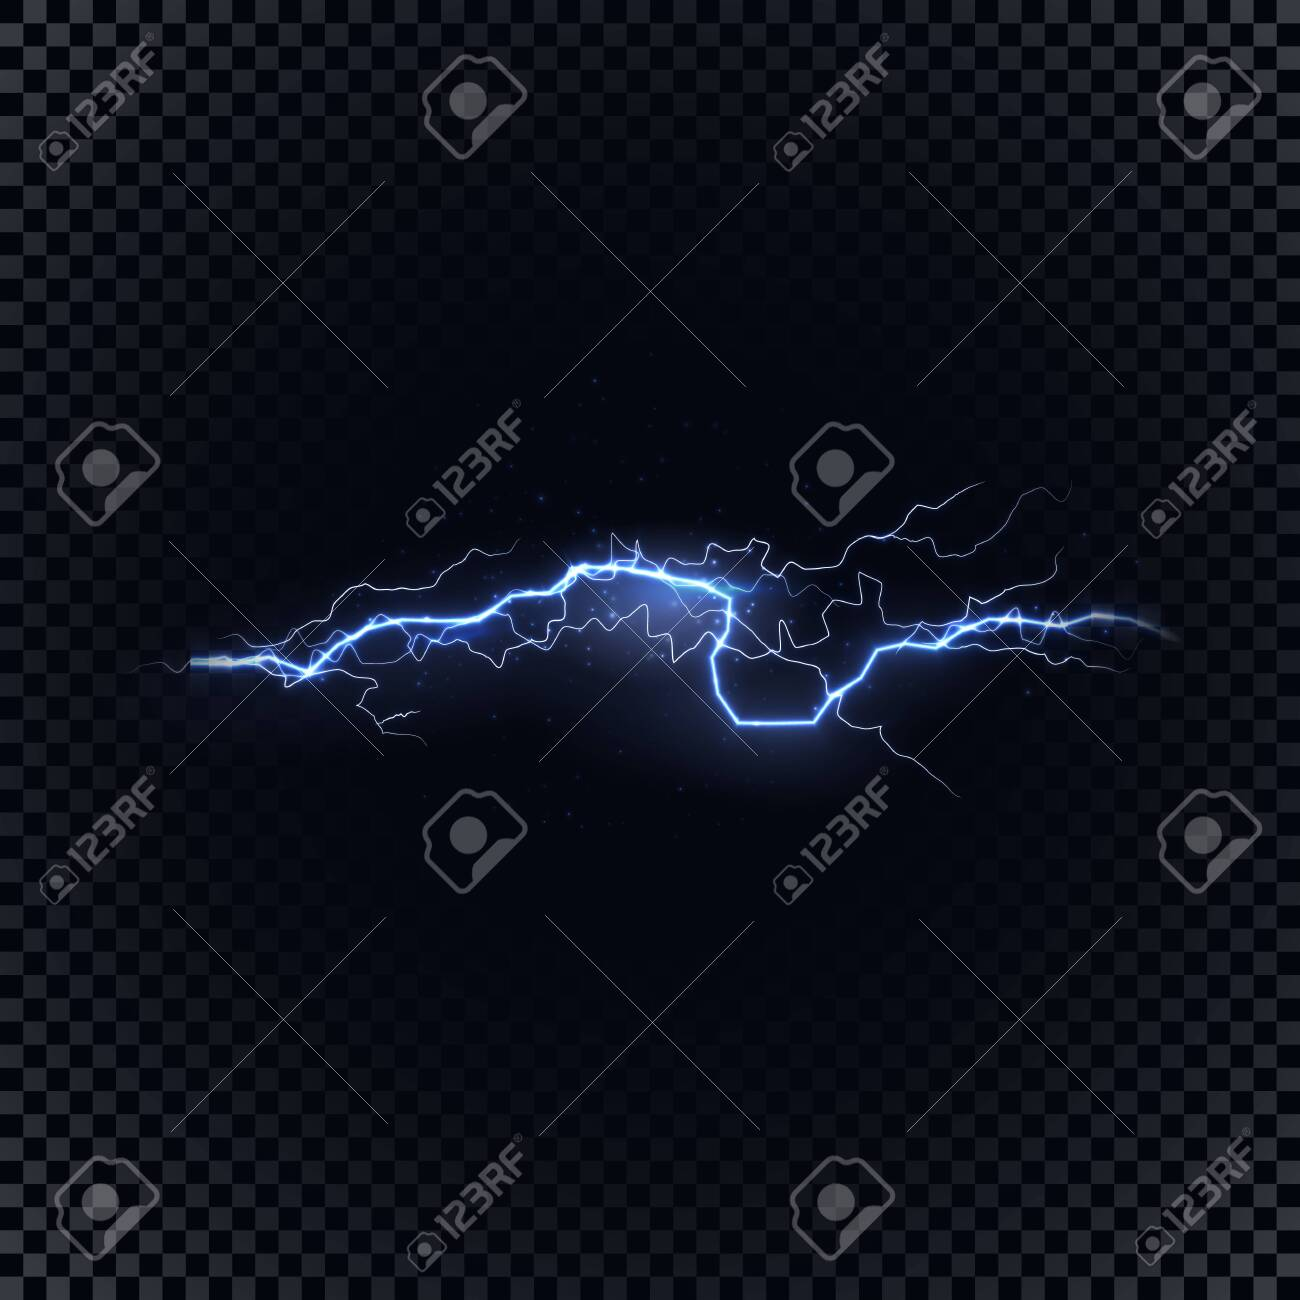 blue vector lightning on black background vector illustration royalty free cliparts vectors and stock illustration image 127371692 123rf com